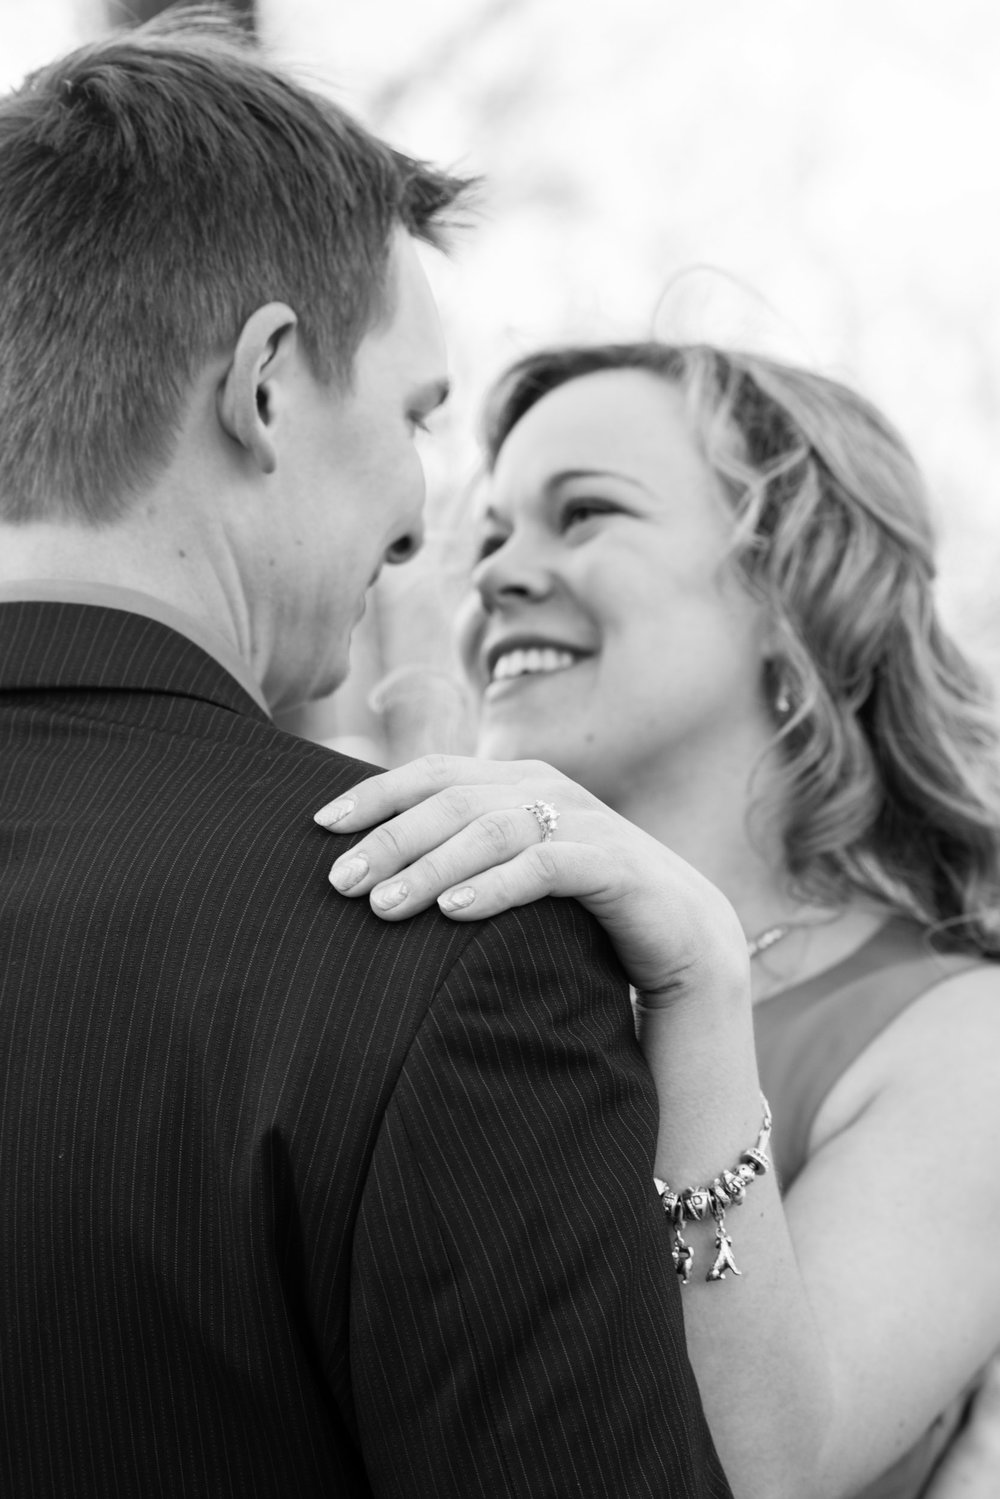 Black and white looking at each other - Engagement Portraits - Photo credit Nicola Bailey.jpg